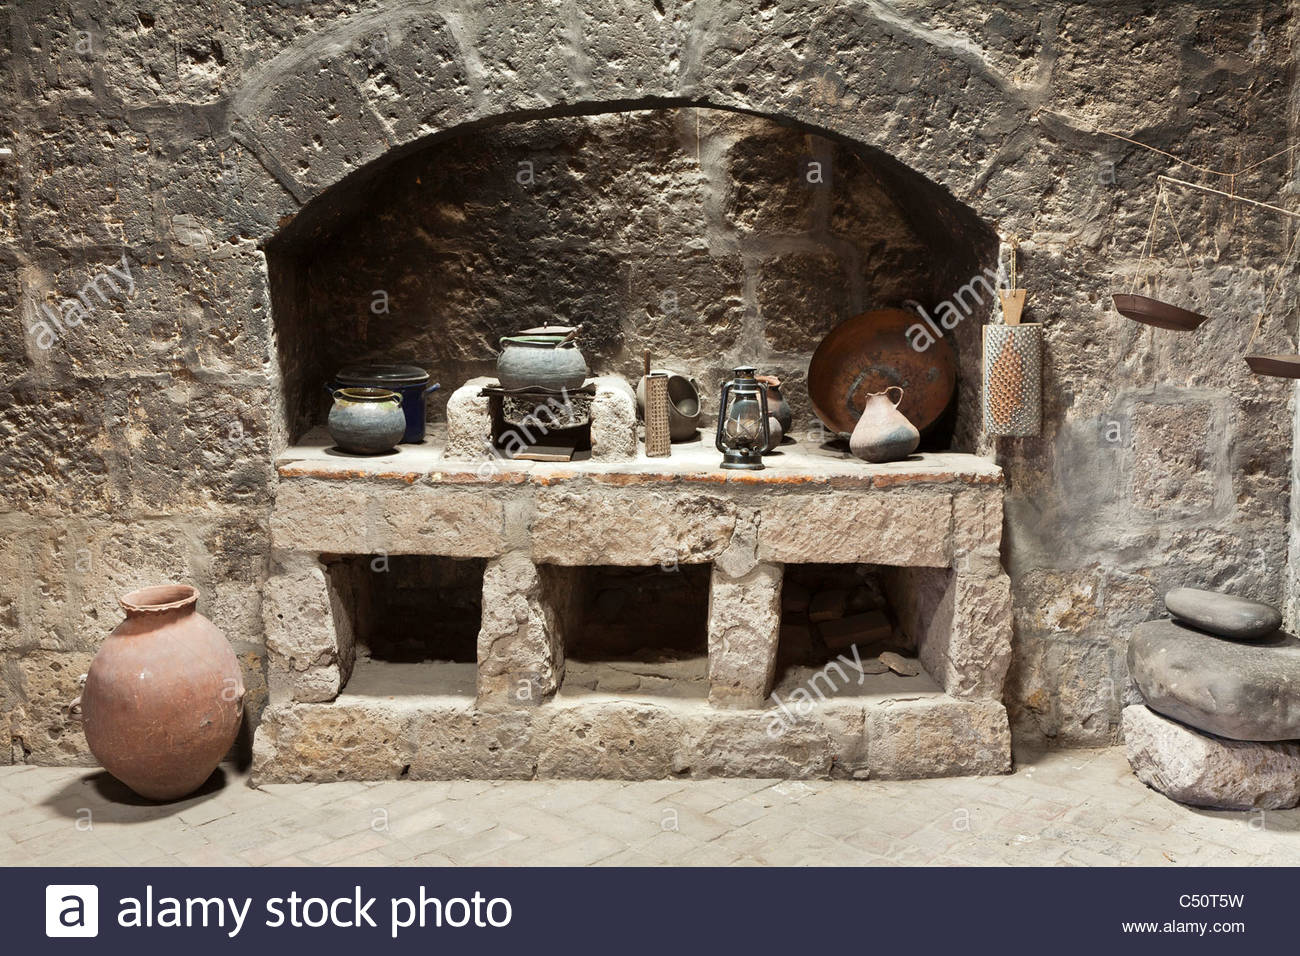 A old colonial era kitchen at Santa Catalina Monastery, Arequipa, Peru. - Stock Image